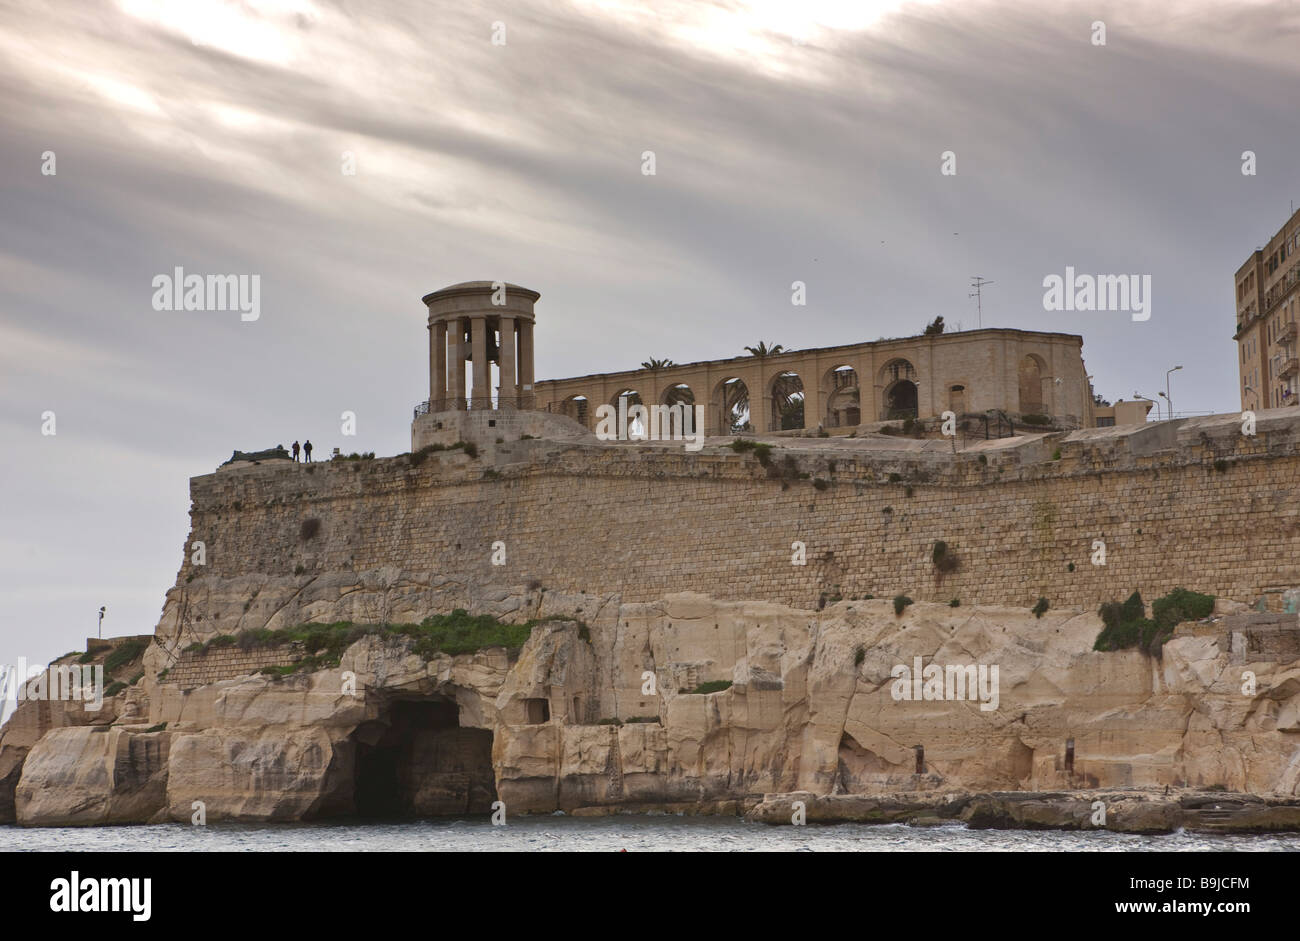 View of the port entrance to the Grand Harbour and the Lower Barracca Gardens at storm, Valletta, Malta, Europe - Stock Image